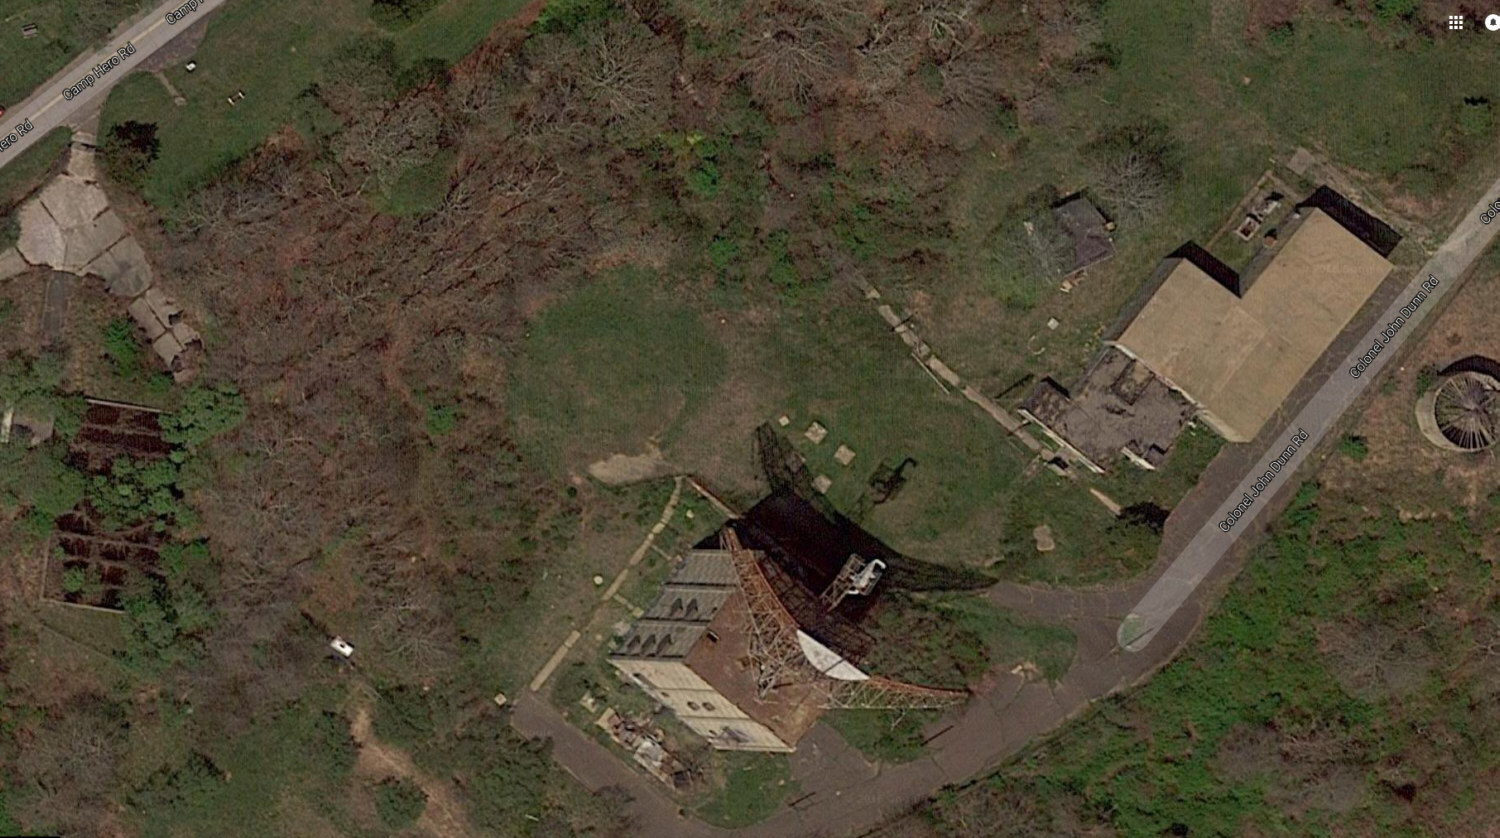 Montauk as seen from Google Maps